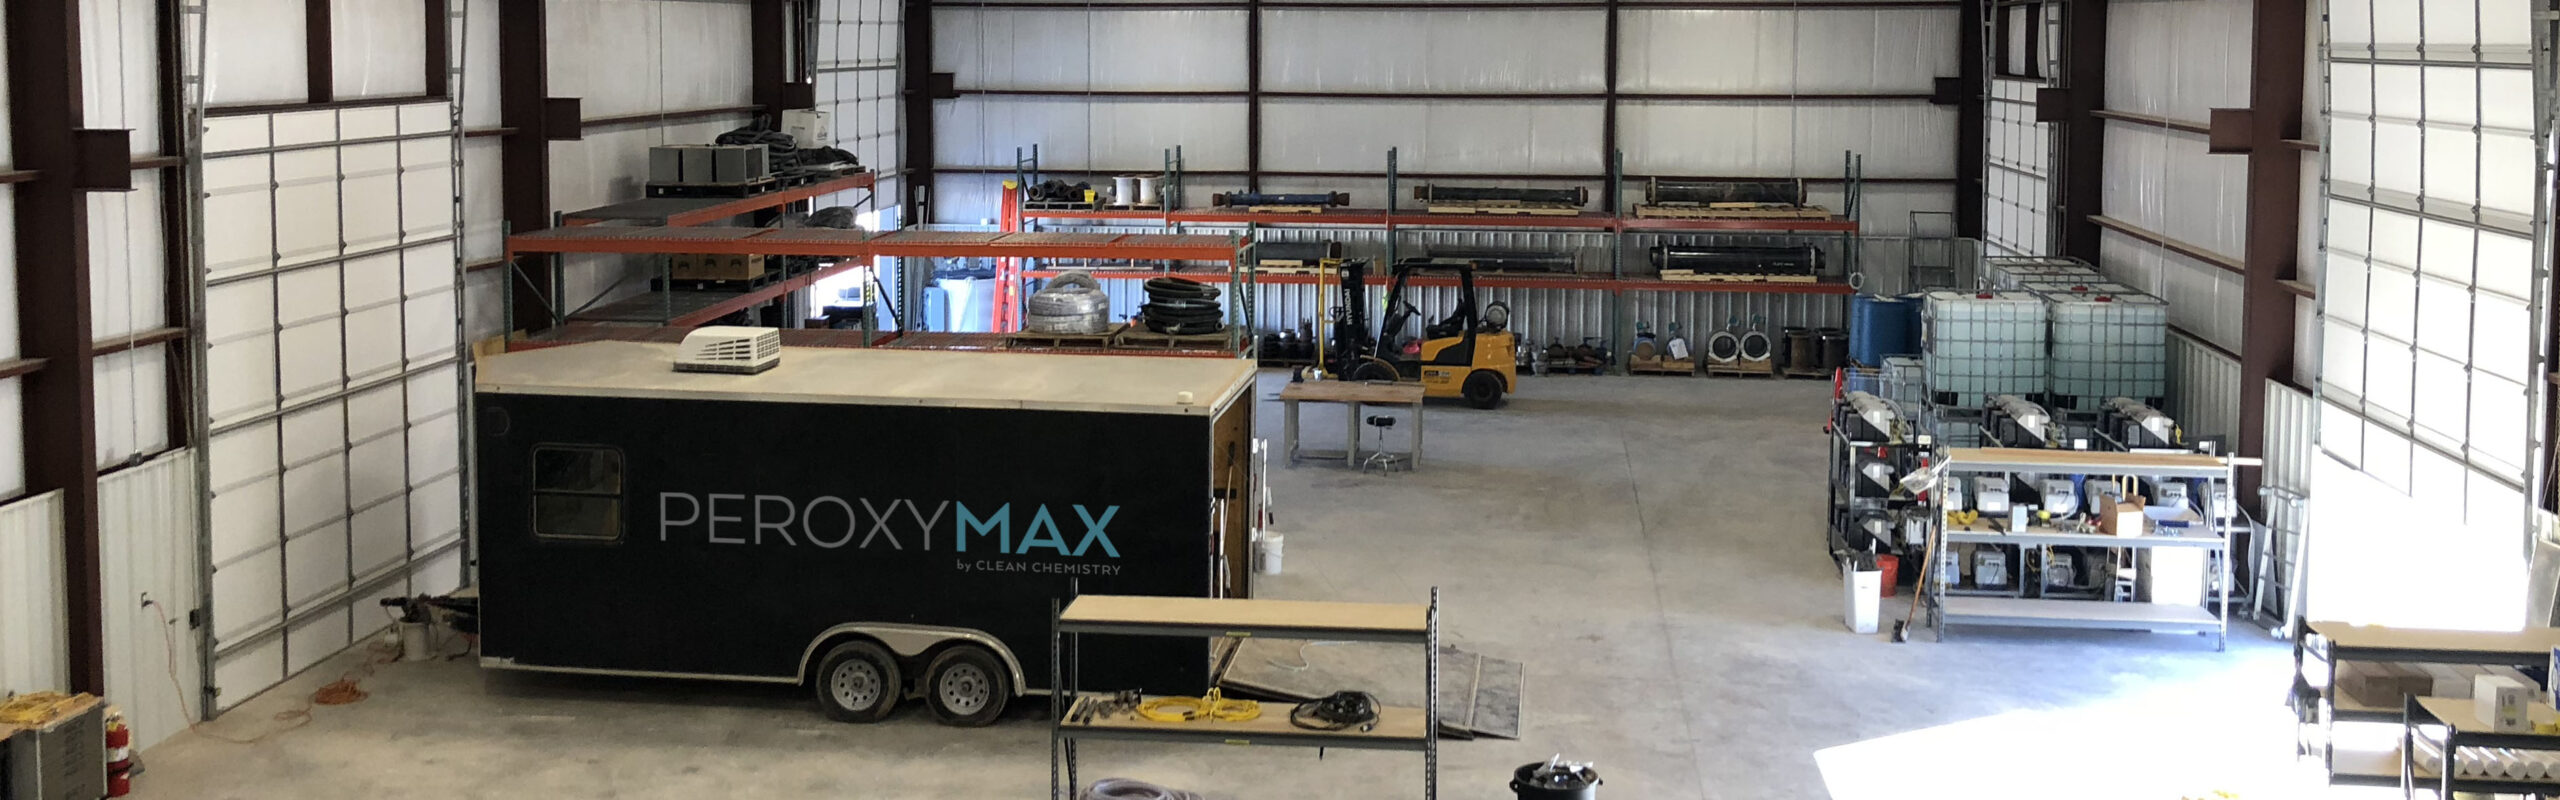 Clean Chemistry's shop in Midland, TX houses a trailer and manufacturing space